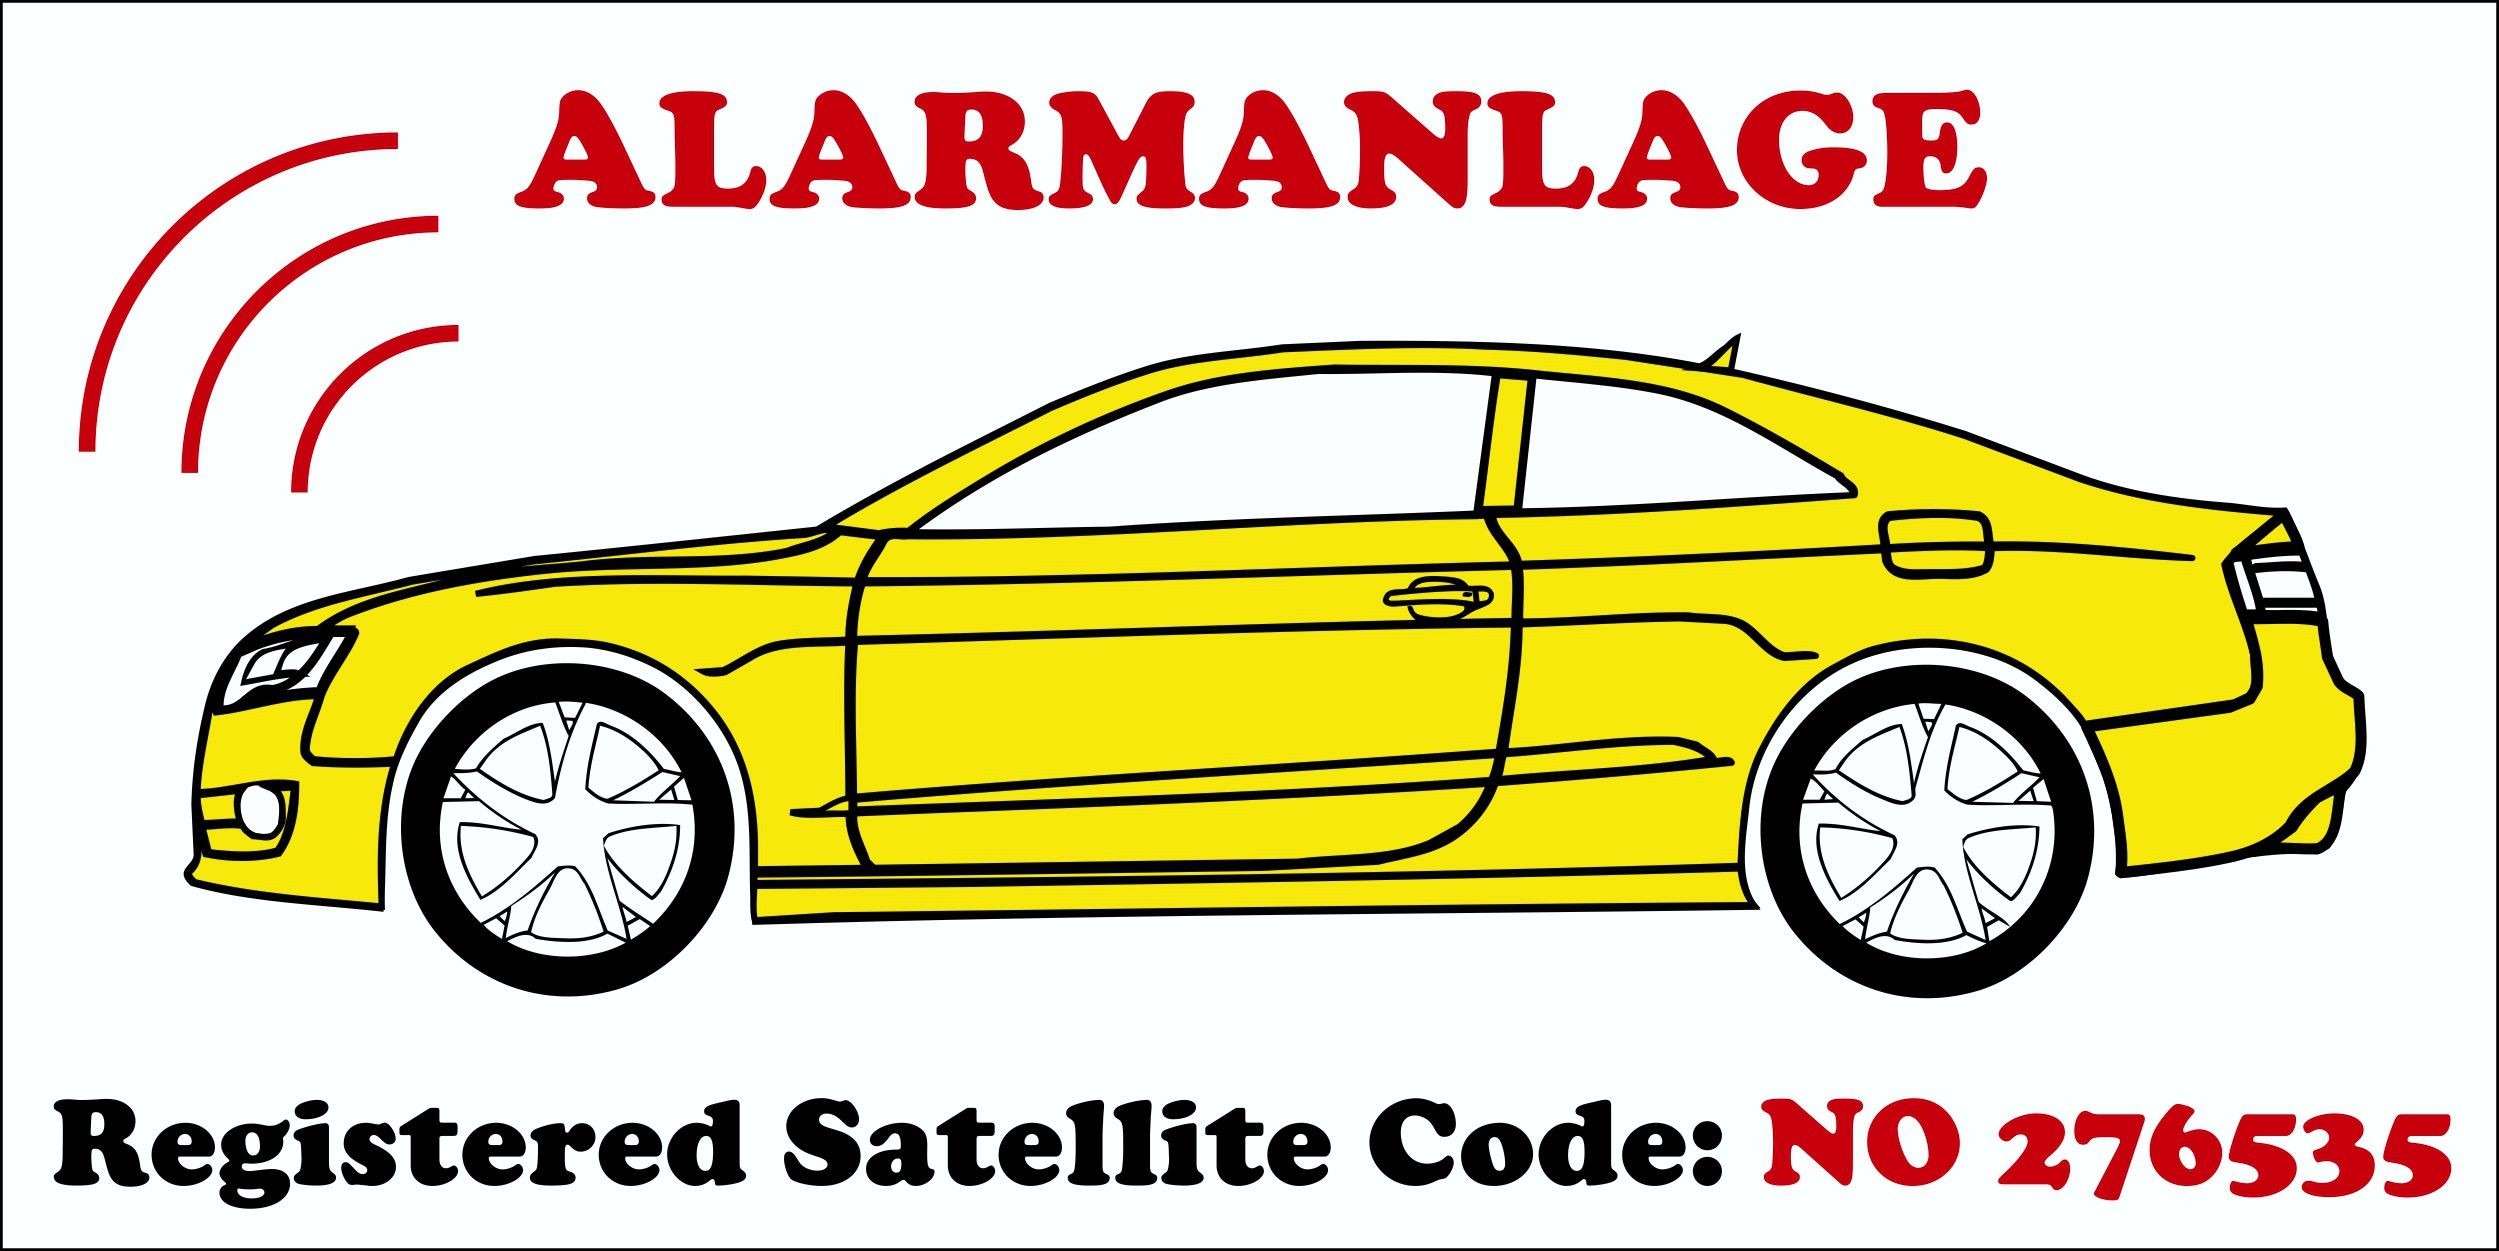 Sticker Alarmanlage Satellite